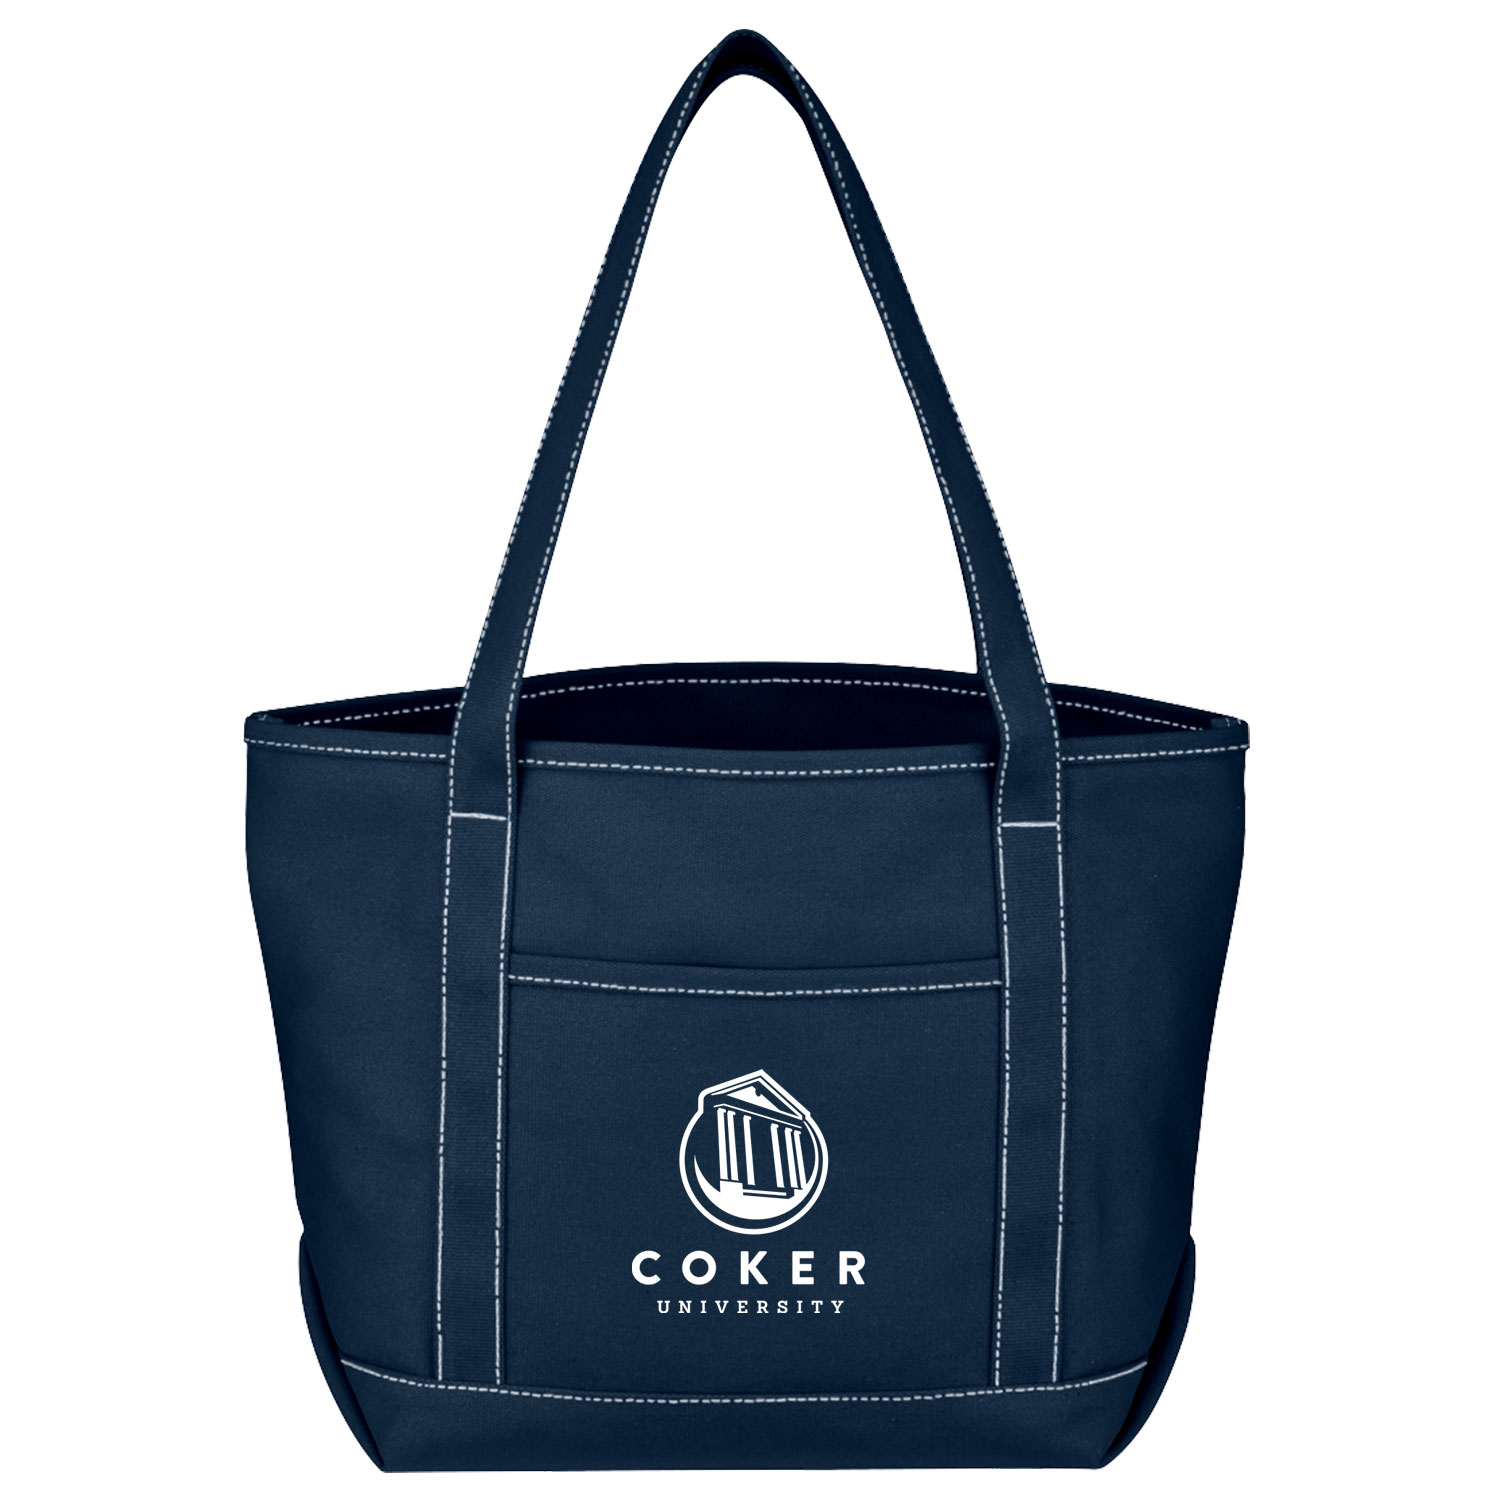 Image For Bag CU NAVY YACHT TOTE